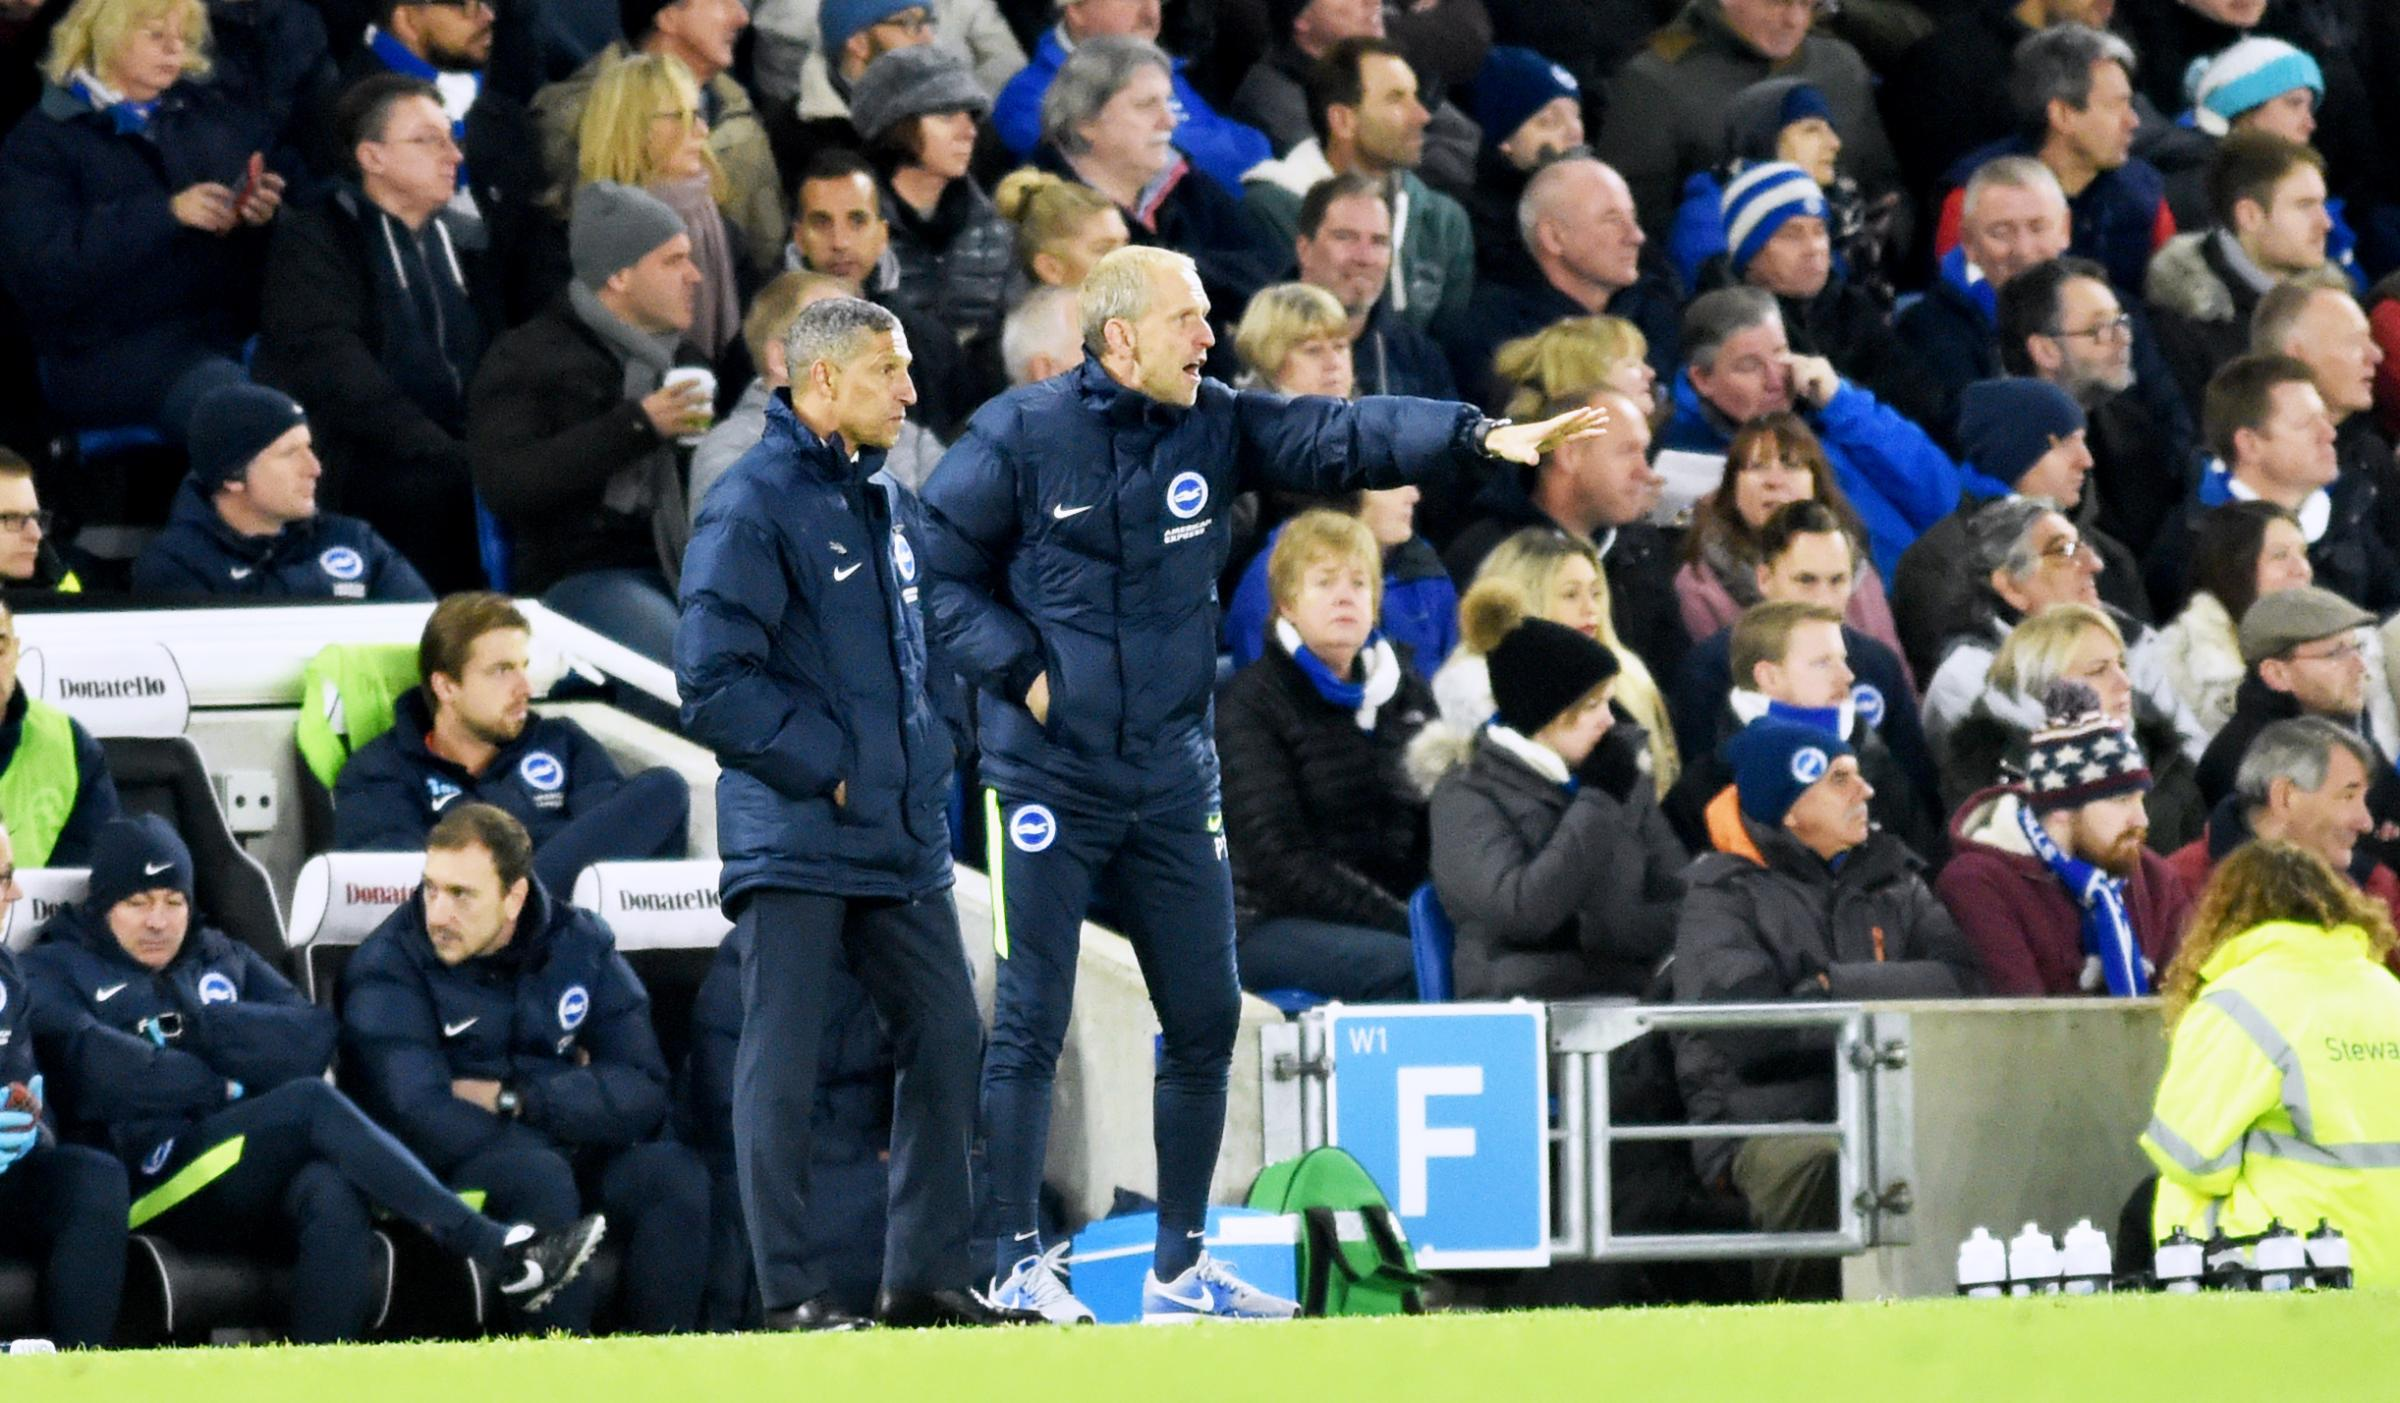 Plenty for Chris Hughton (left) and assistant Paul Trollope to ponder ahead of trips to Tottenham and Chelsea during a hectic period